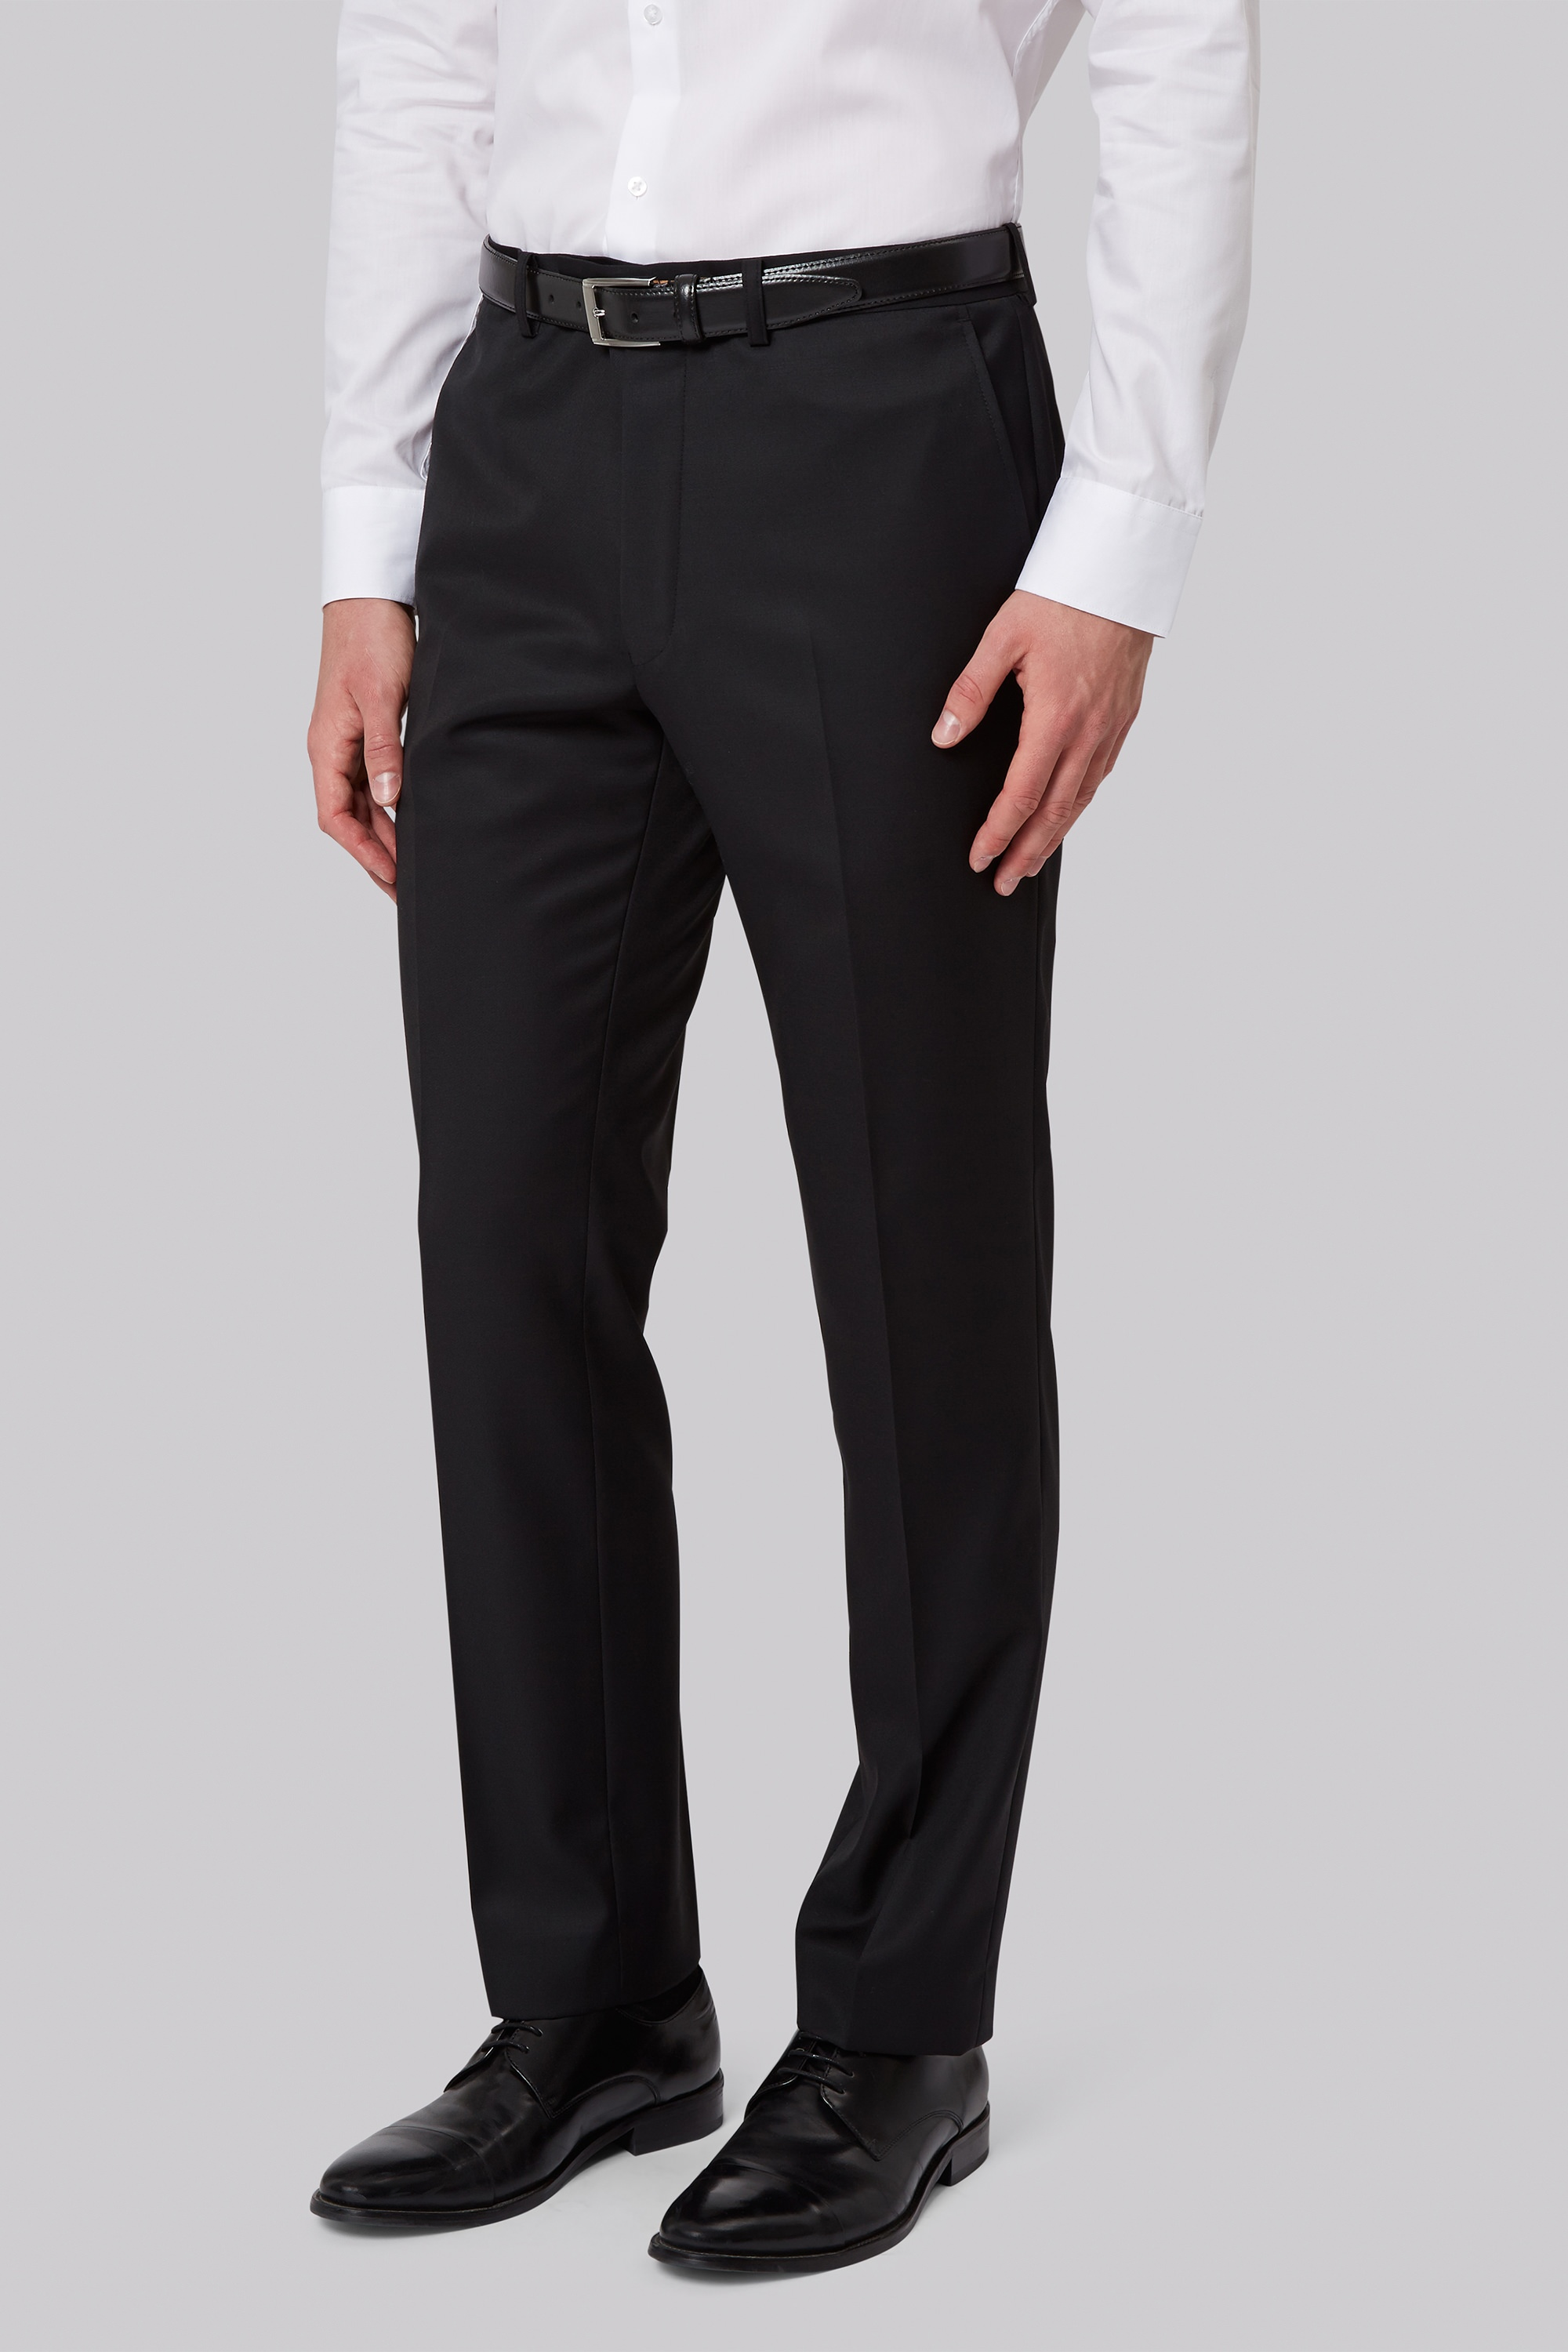 FREE SHIPPING AVAILABLE! Shop ragabjv.gq and save on Slim Fit Dress Pants.